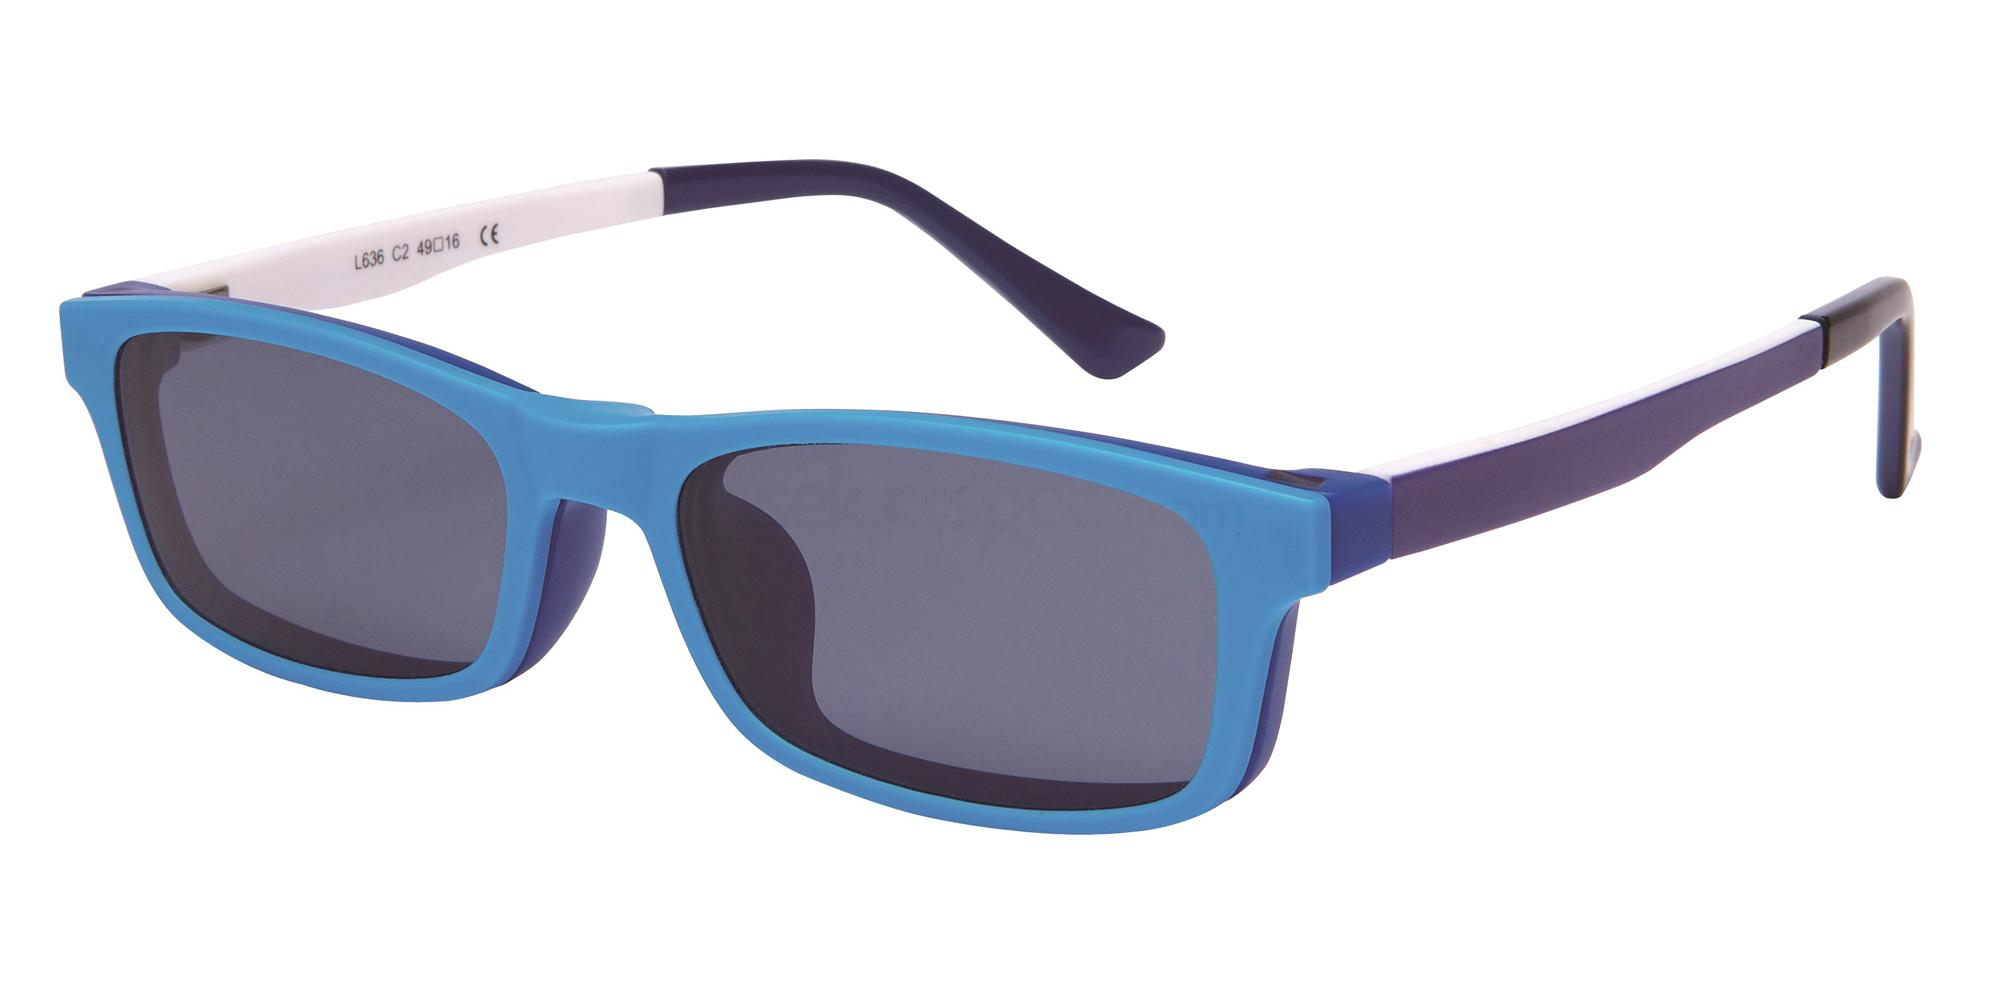 C2 L 636 - With Clip on Glasses, Loox